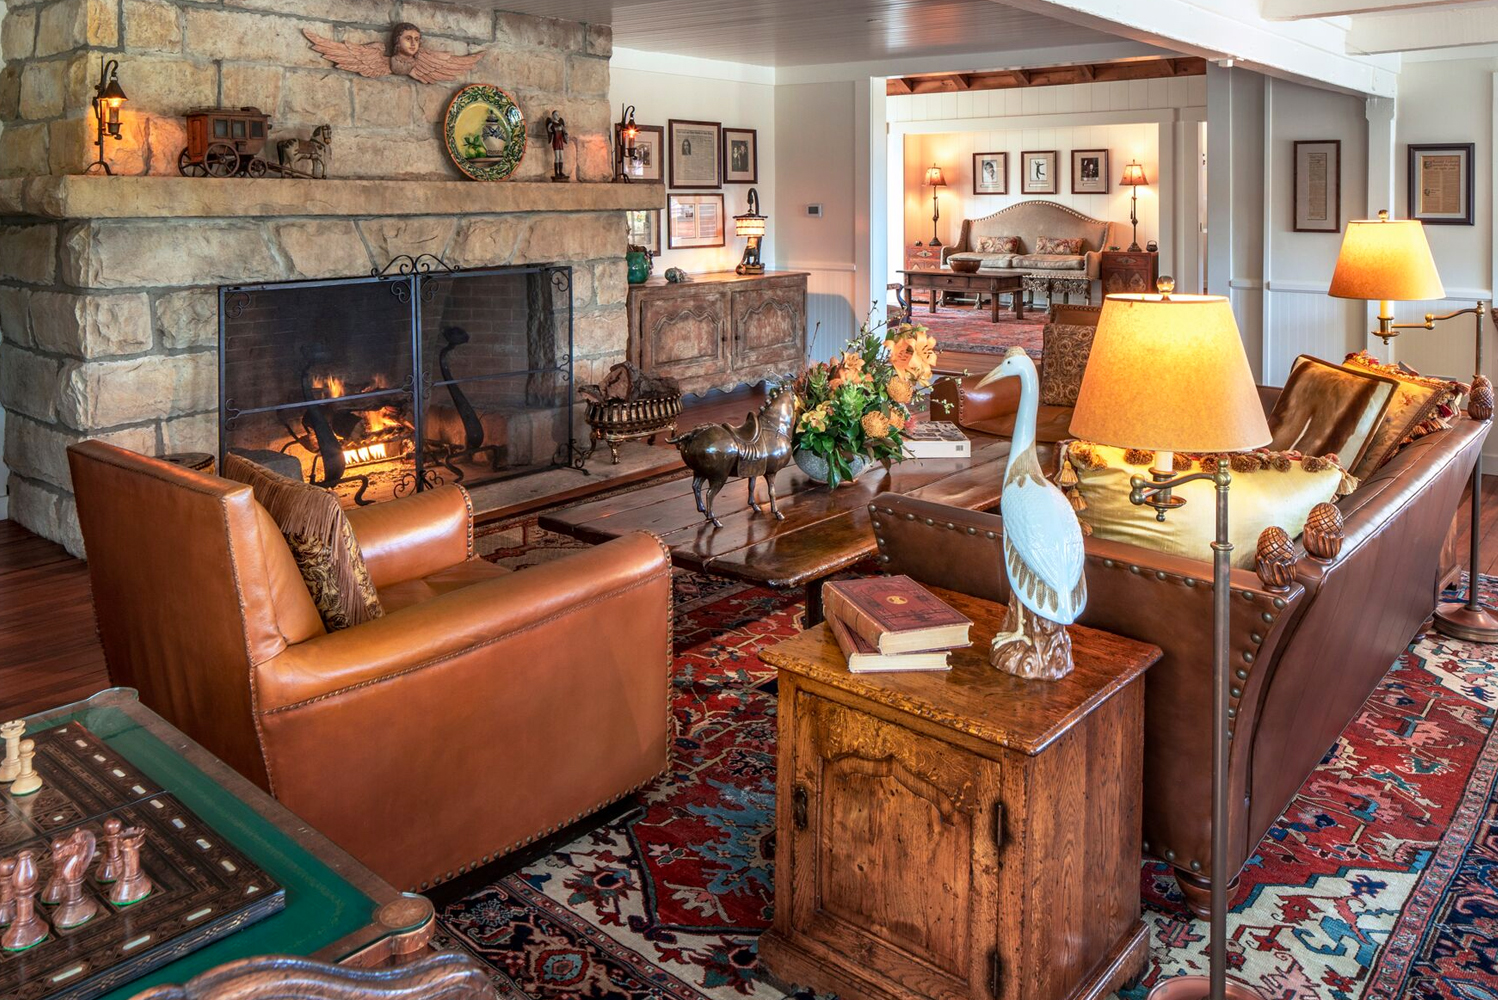 Ty Warner, owner of San Ysidro Ranch, helmed the interior design that was done in-house.